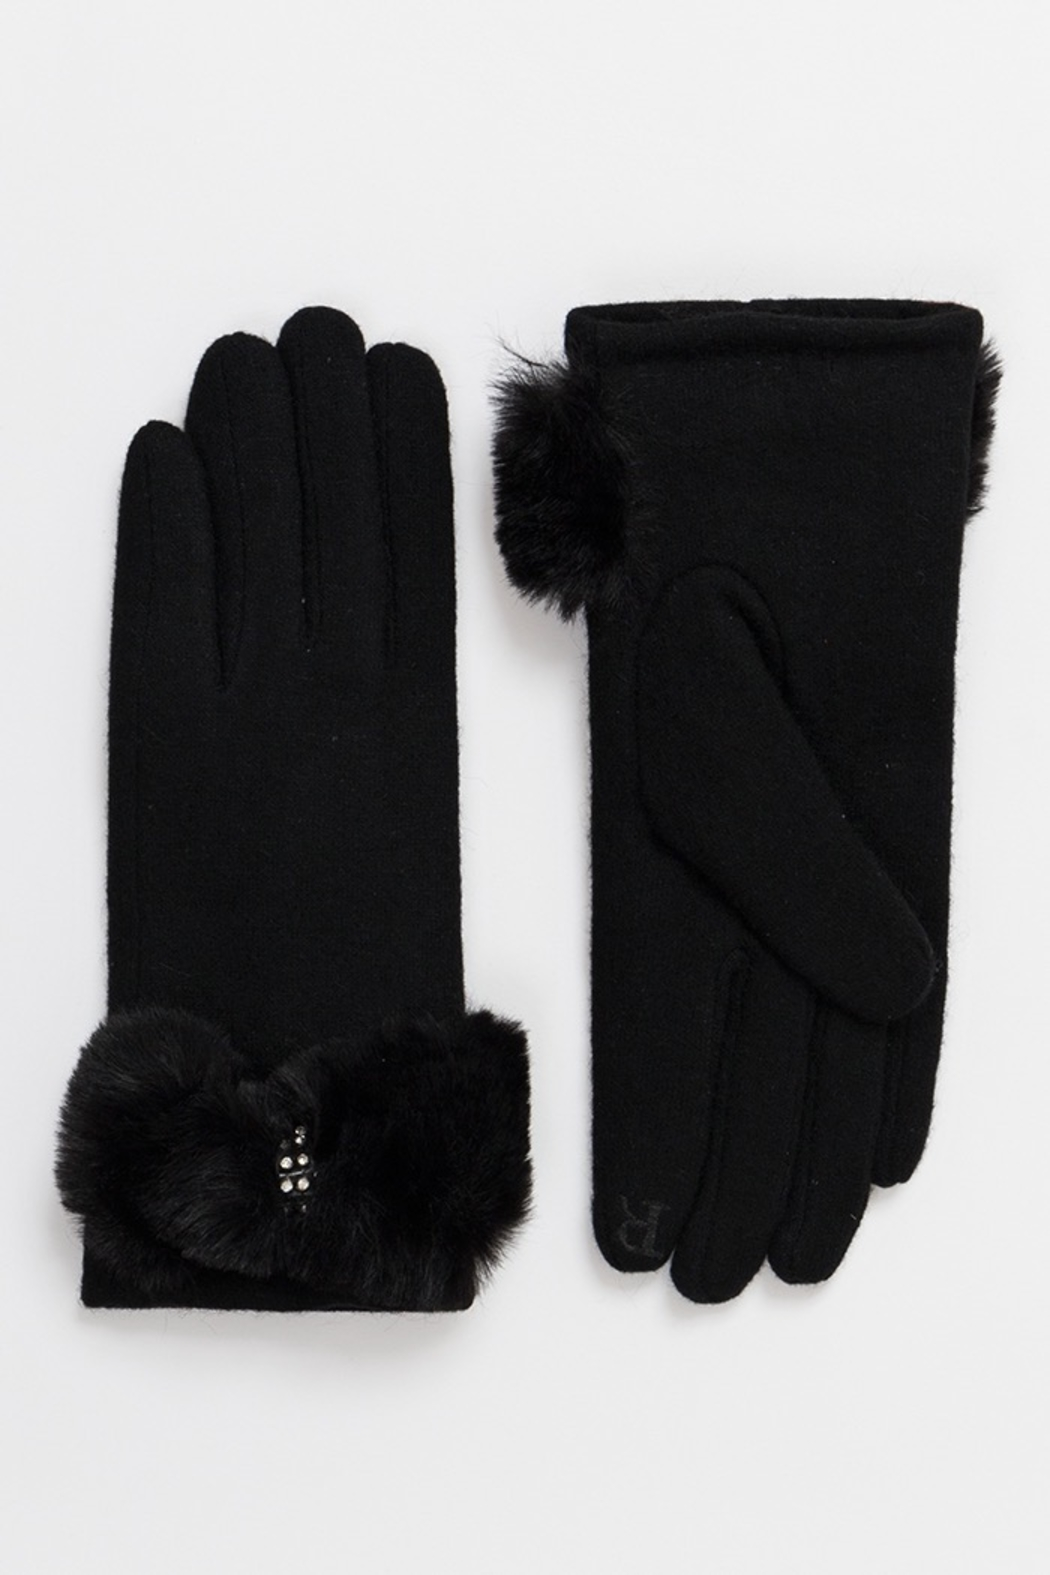 Pia Rossini HELENA GLOVES - Main Image